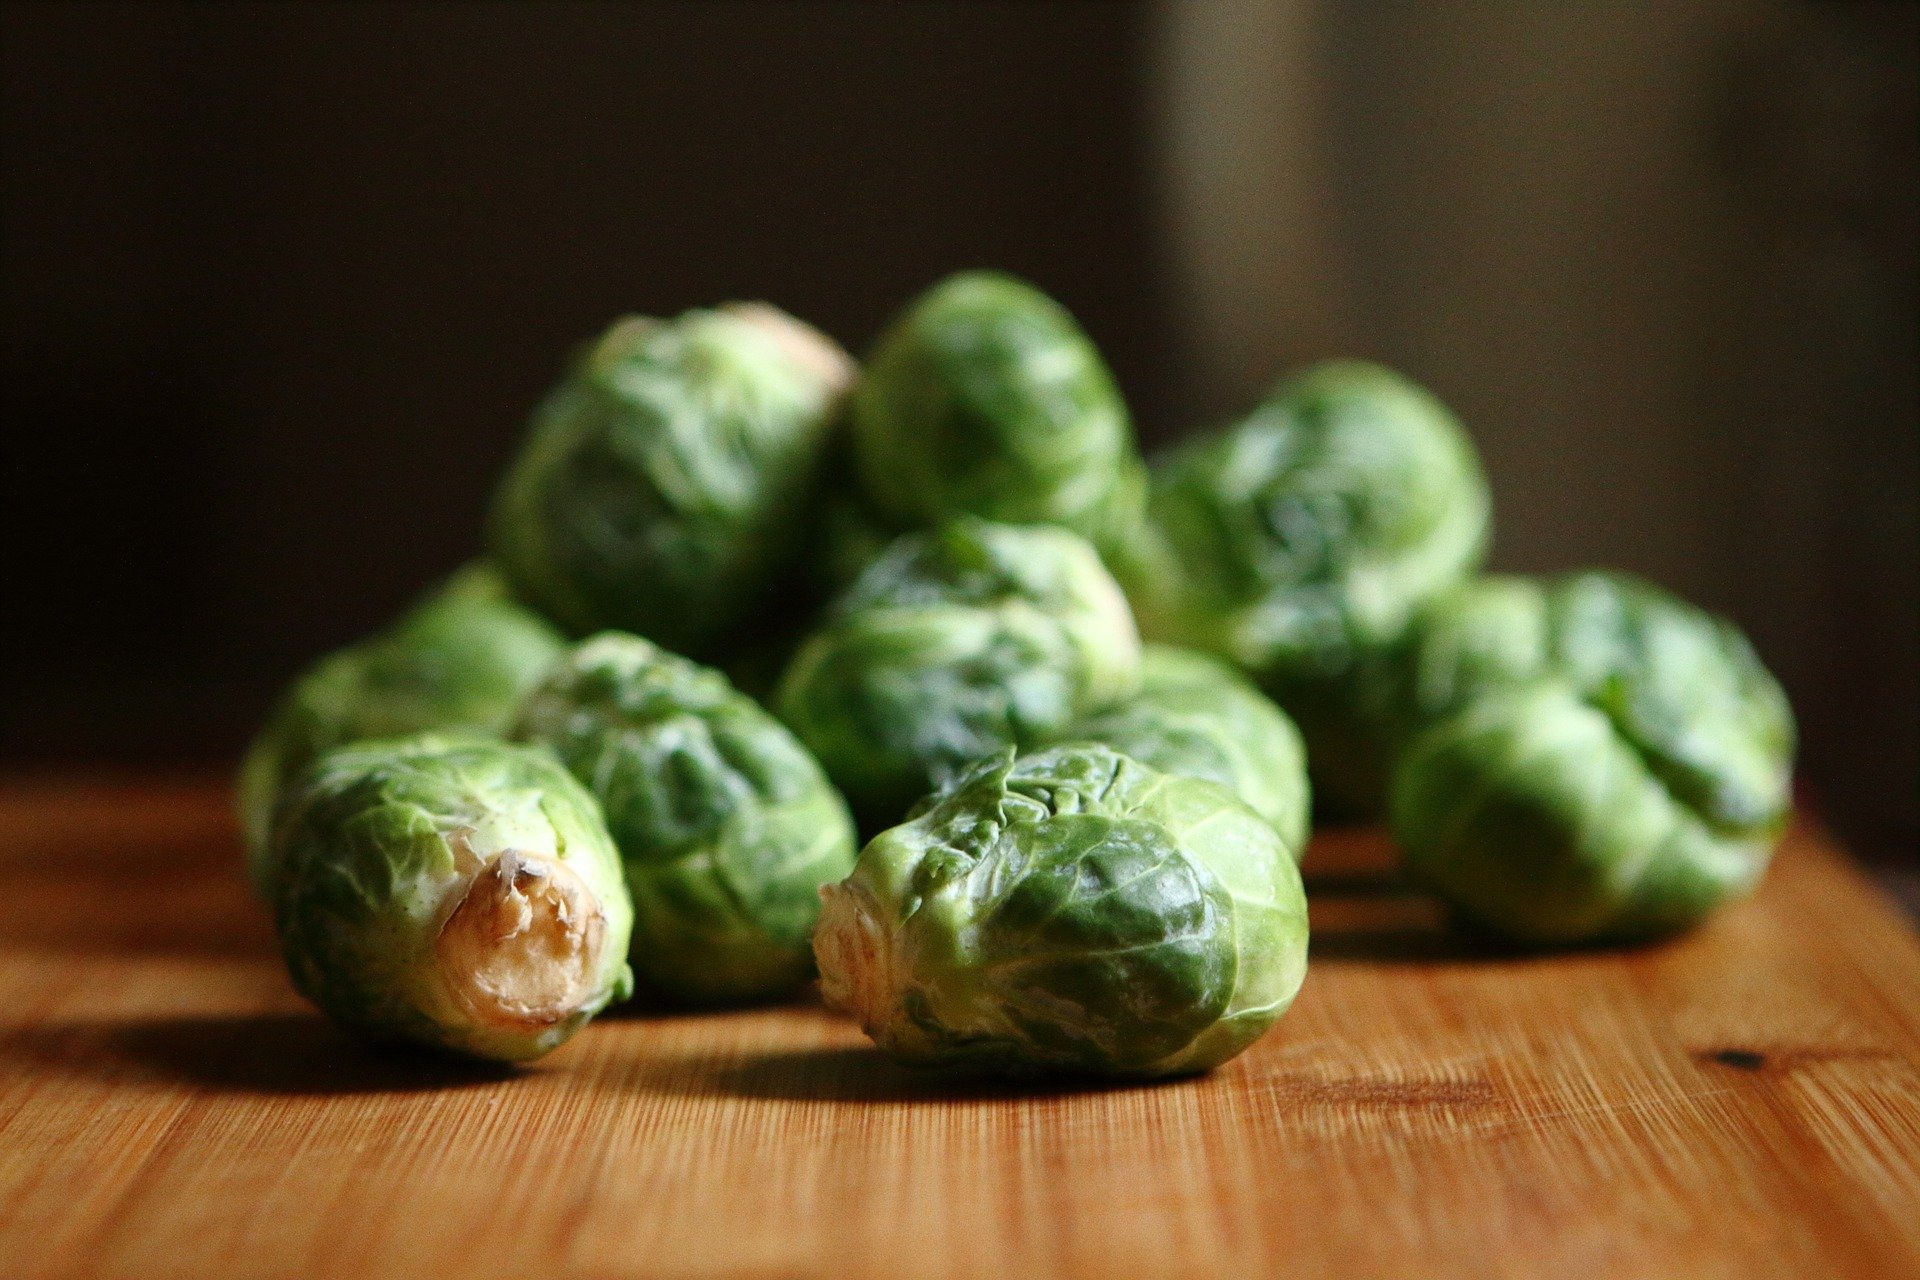 Above: Jo Wilson, founder of Dandelion Stationery likens the taste of the new normal to Brussels sprouts!